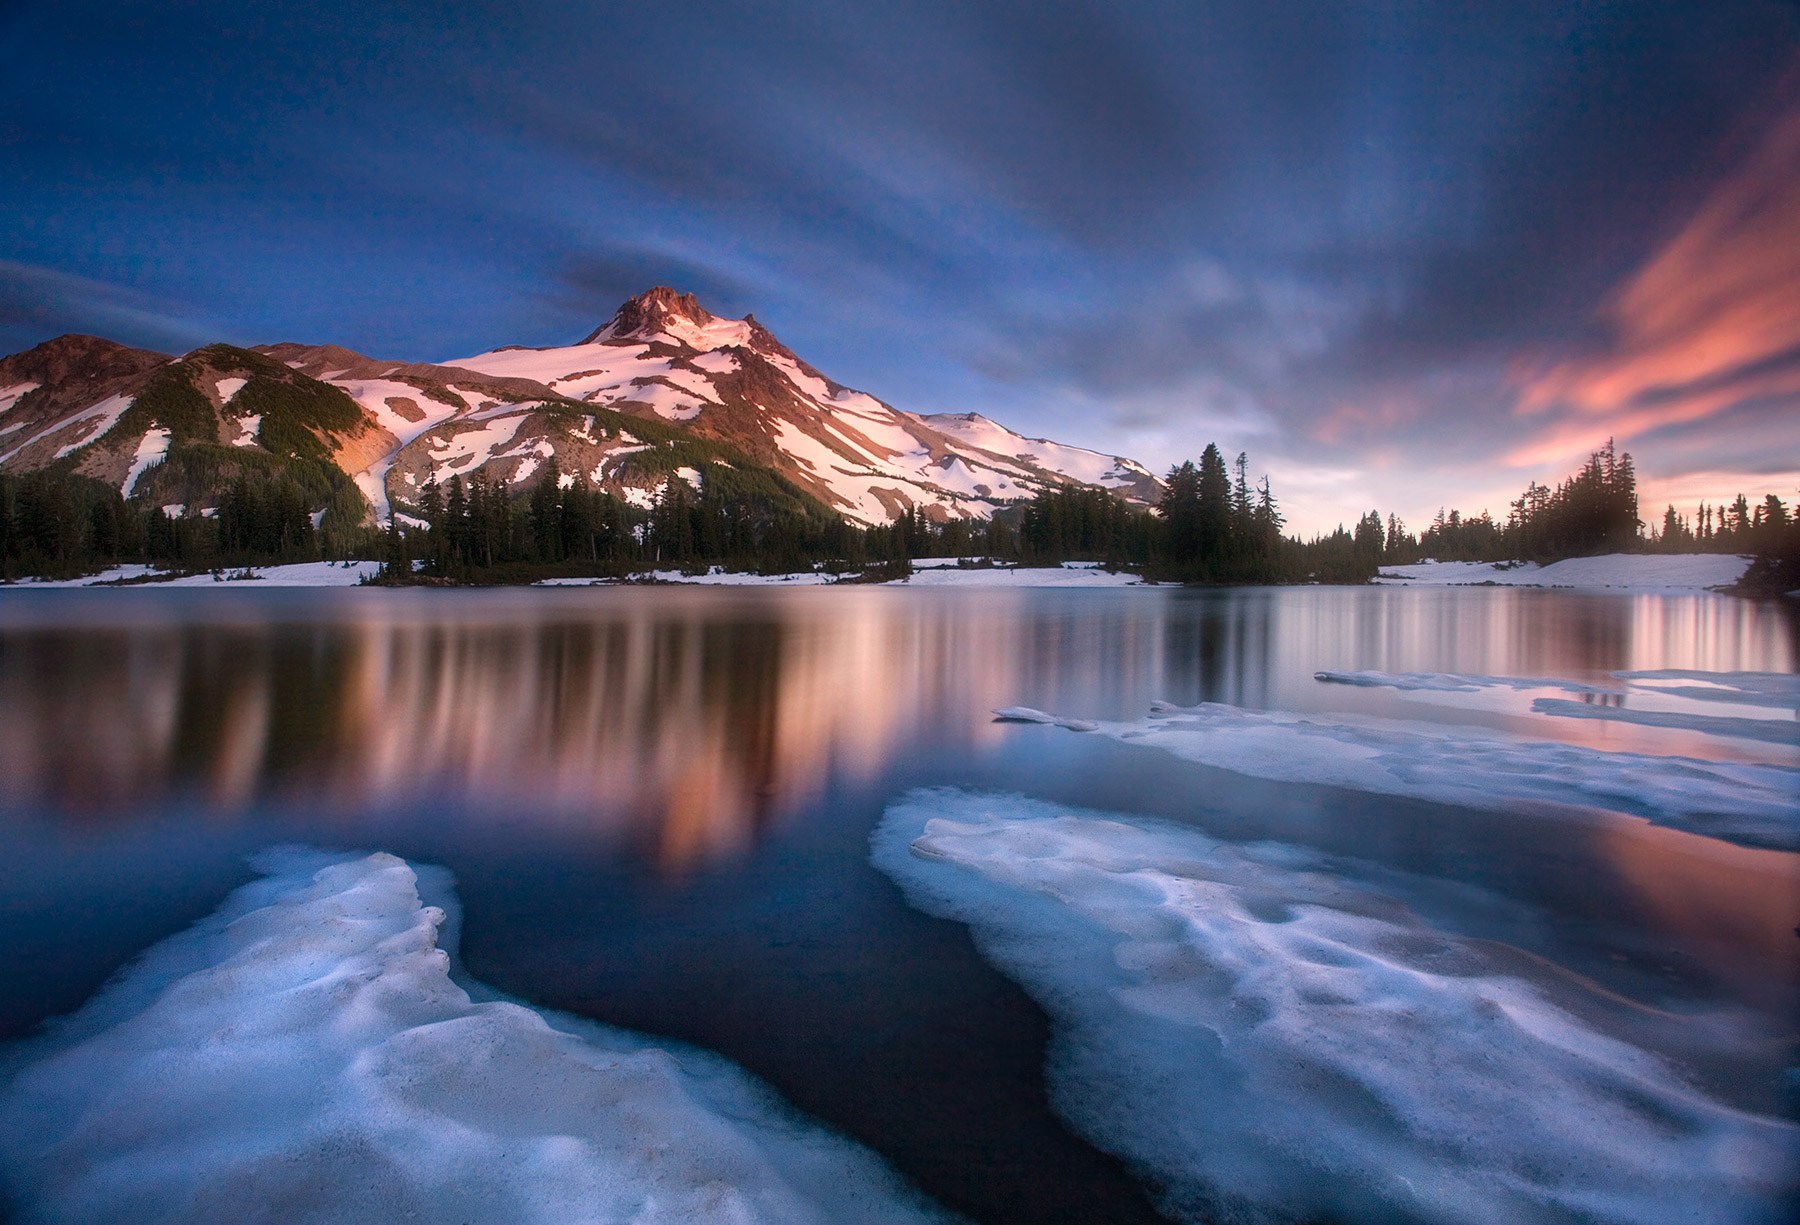 Long exposure streaks the clouds passing over Oregon's Mount Jefferson reflected in an icy lake.